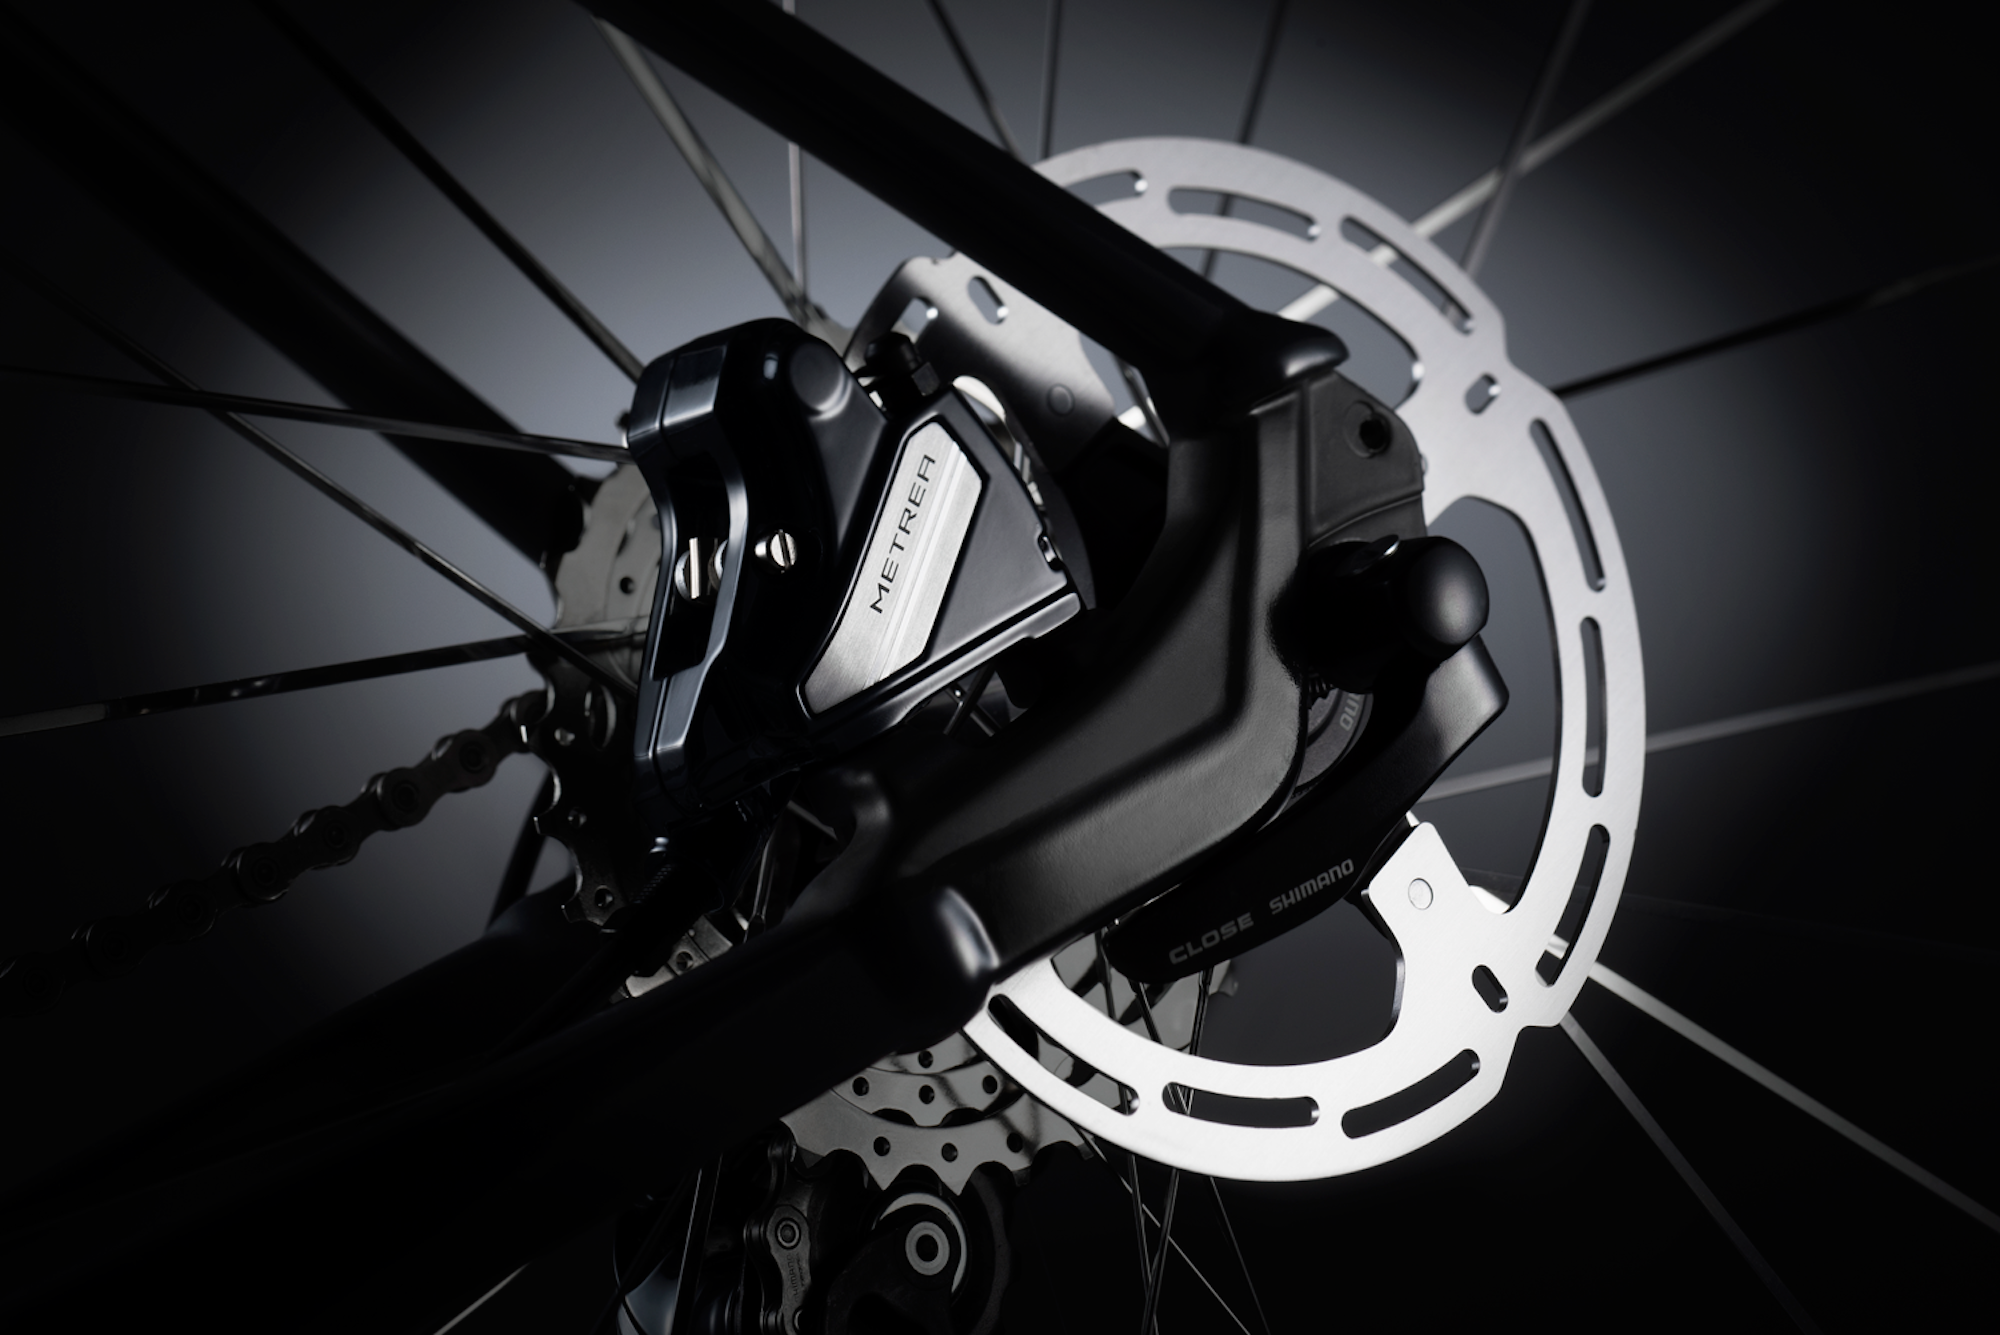 Shimano Metrea groupset is aimed at urban cycling market